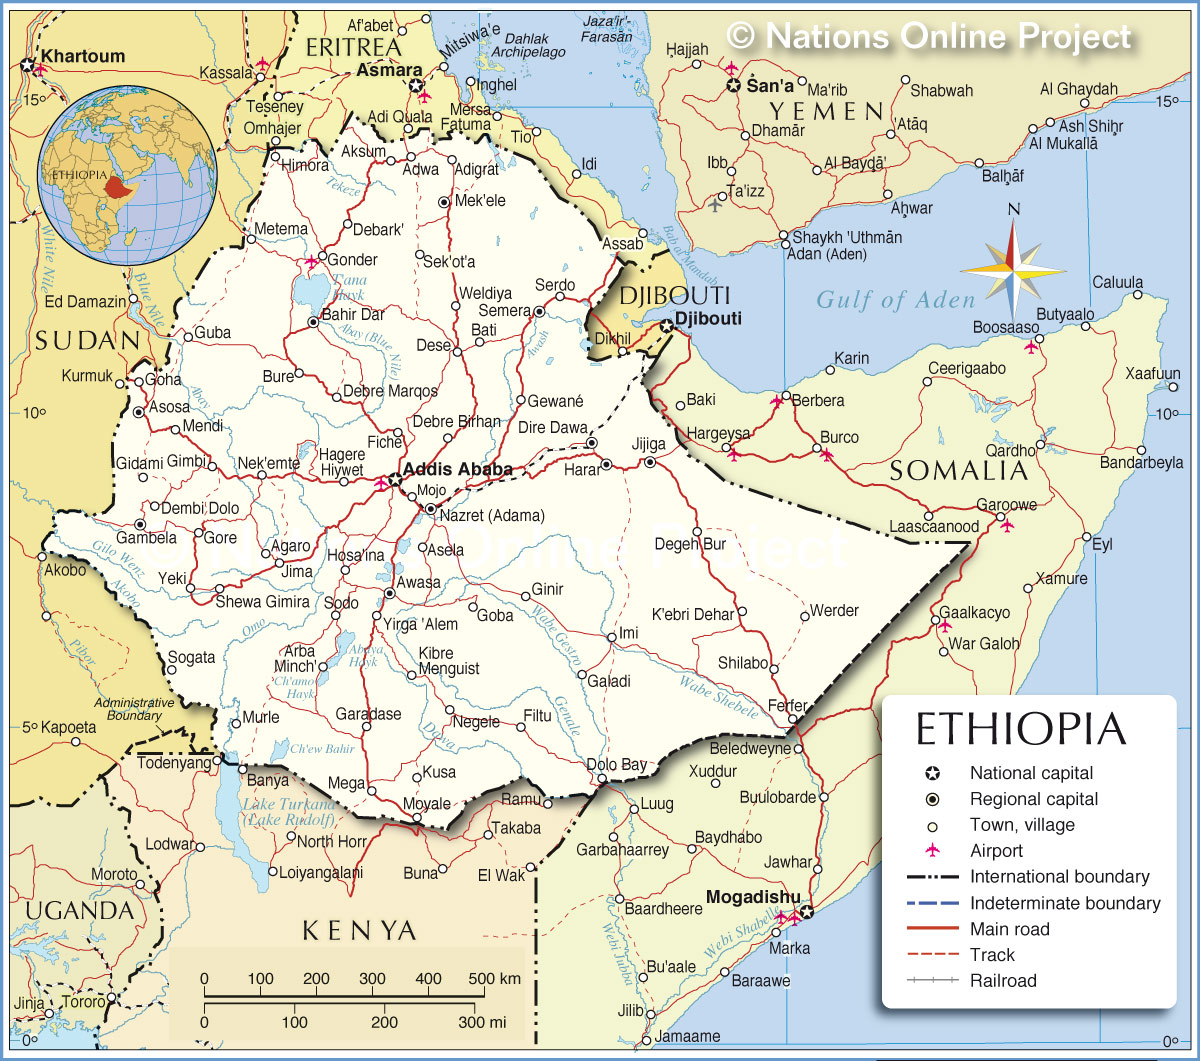 Political Map of Ethiopia - Nations Online Project